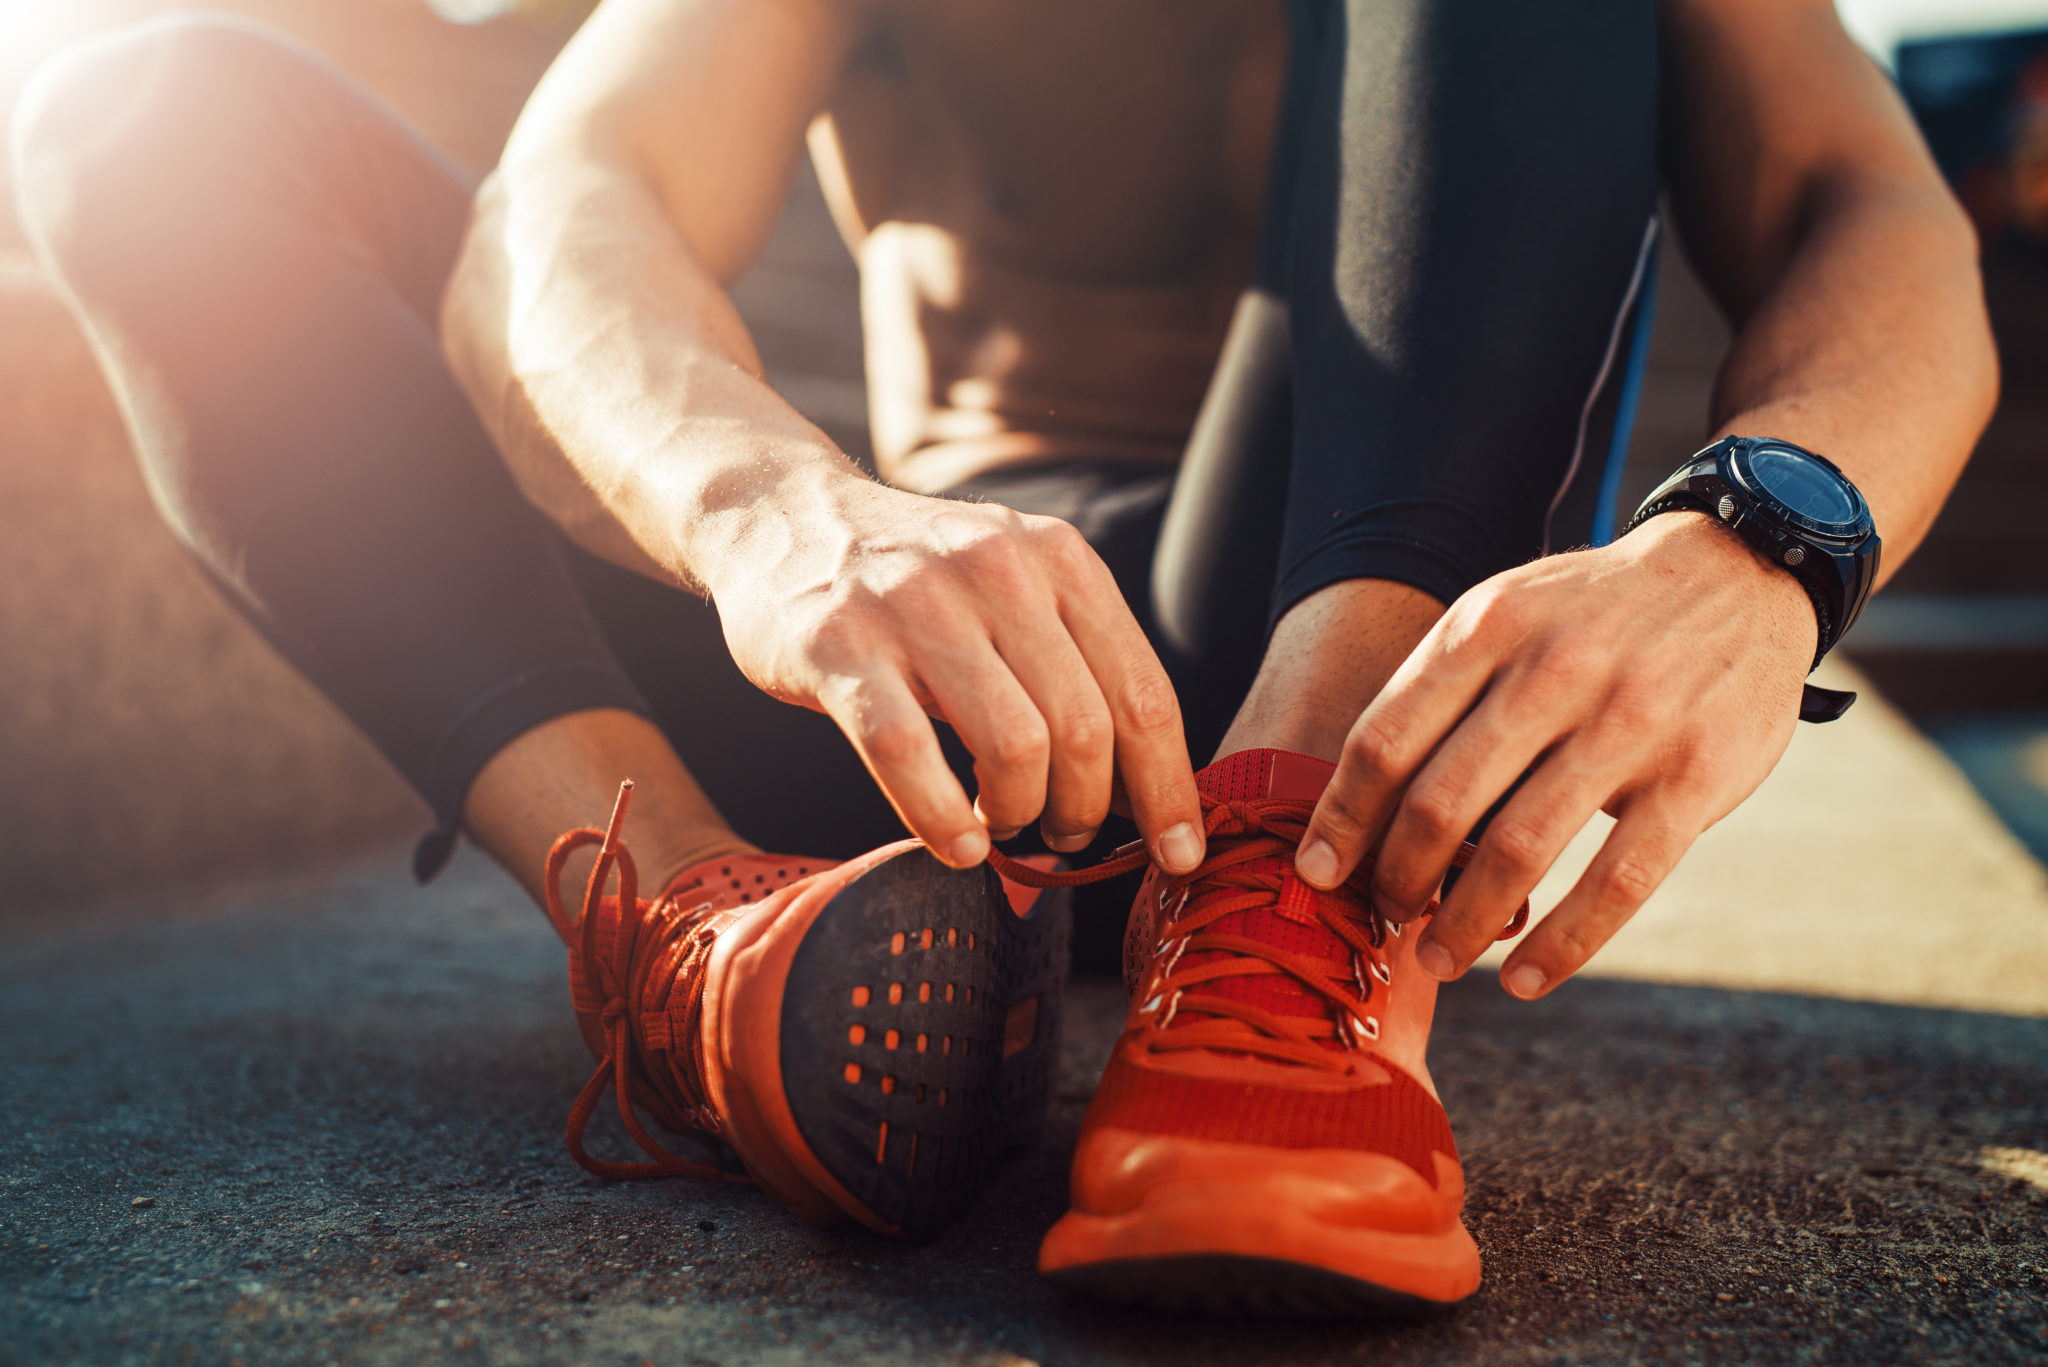 Regular exercise leads to increased mental and physical energy